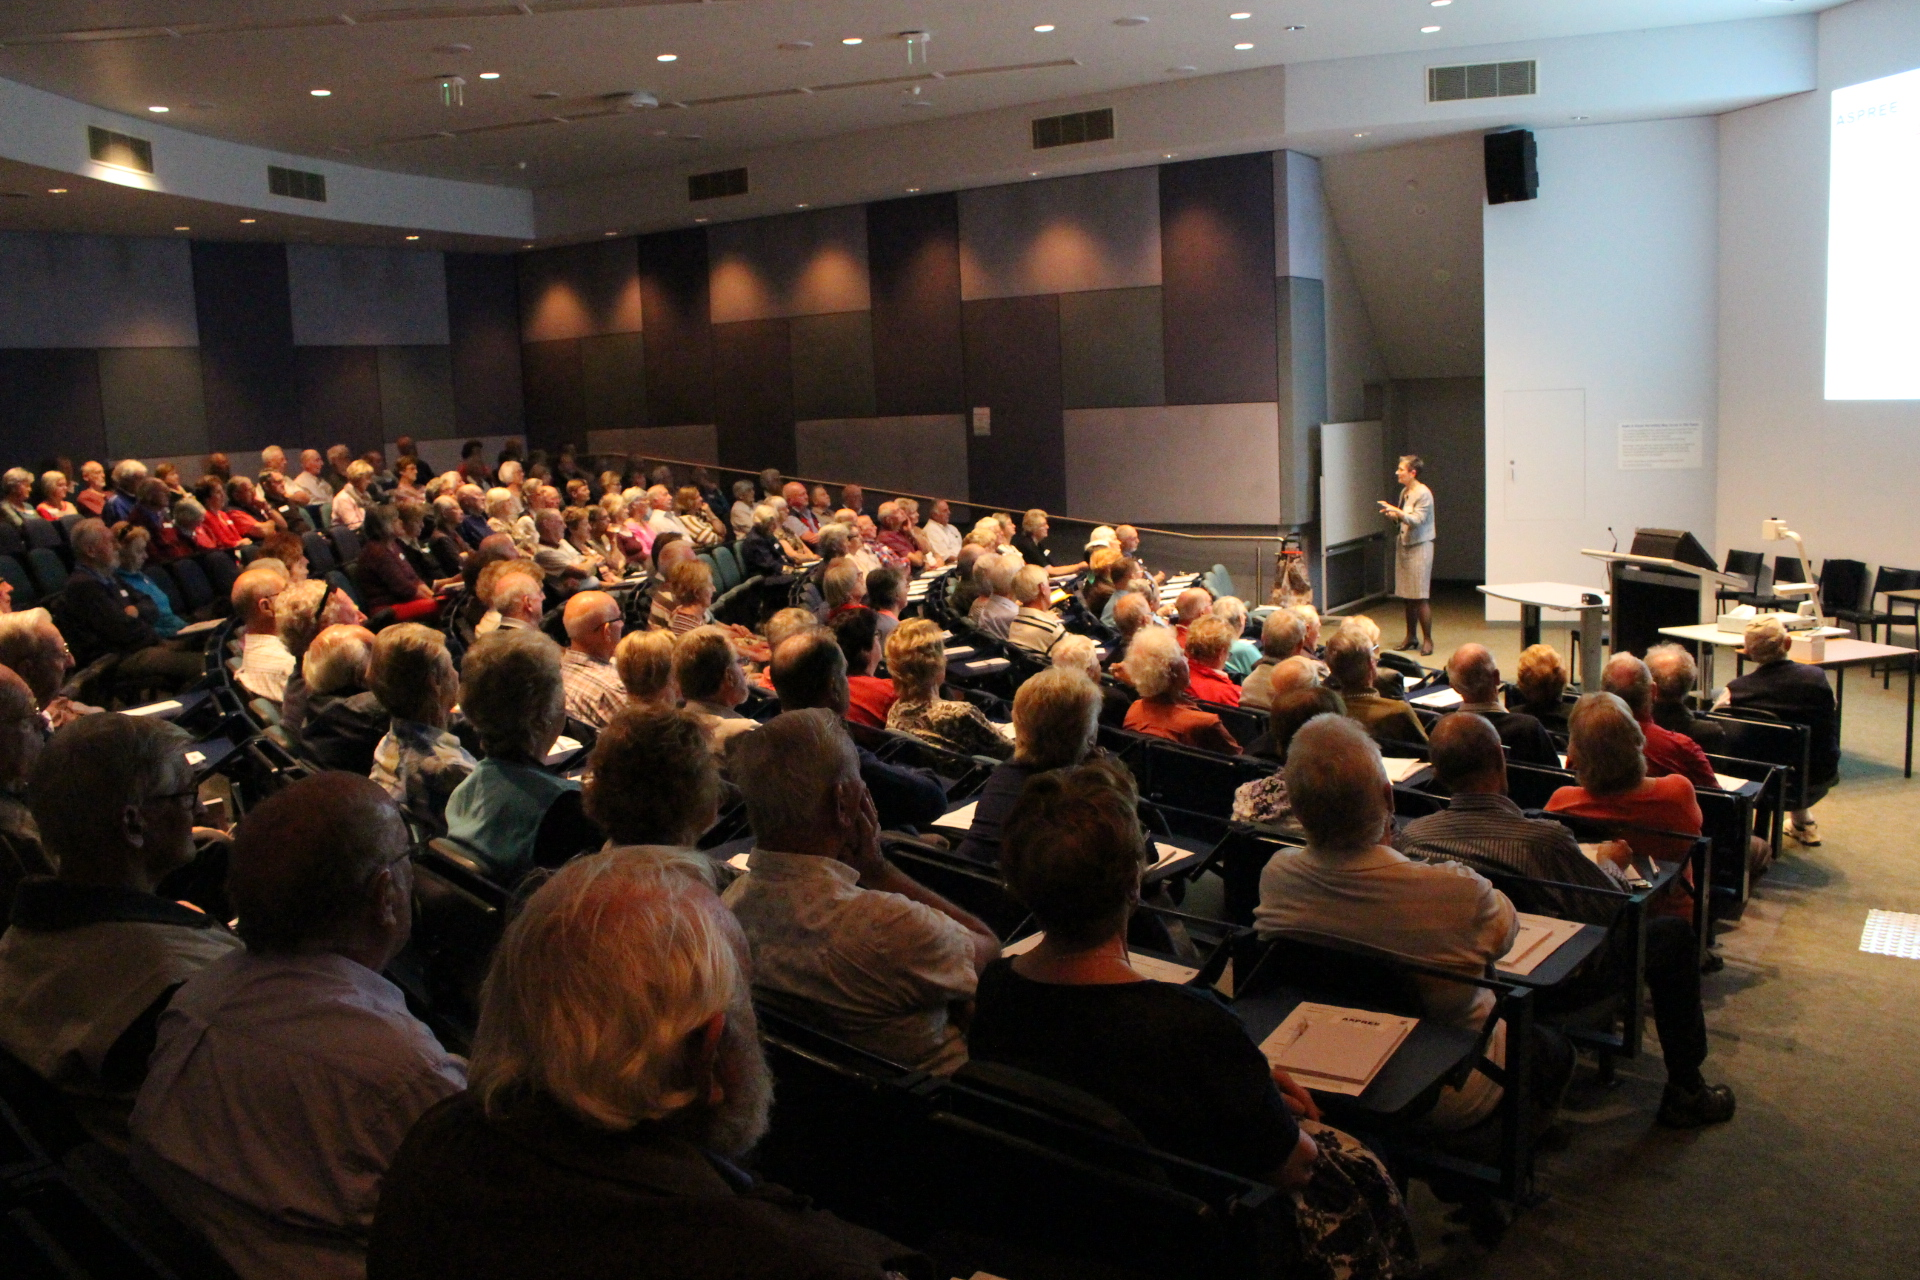 Older adults fill a lecture theatre, listening to a suited woman explain aspects of the ASPREE trial displayed on the large screen behind her